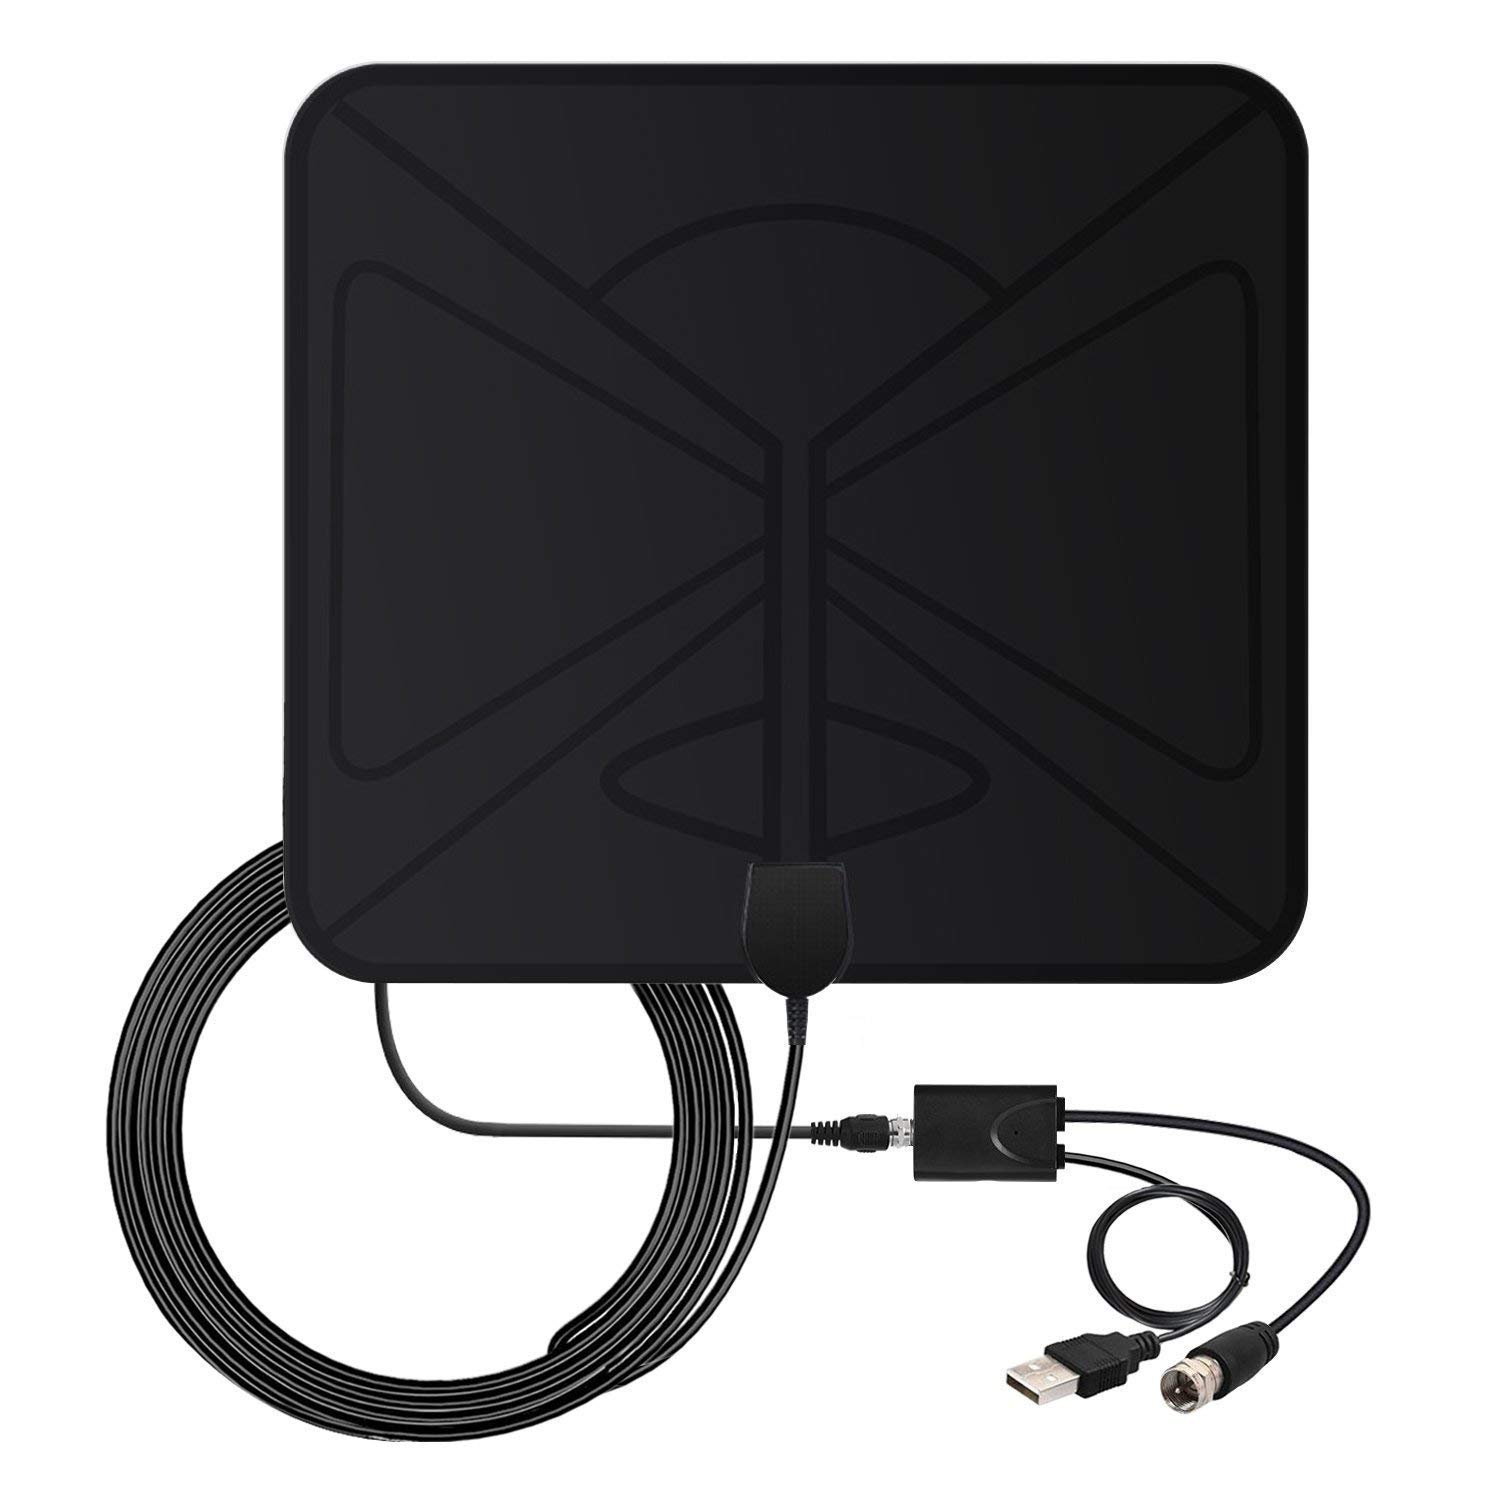 HDTV Antenna, 2018 Indoor Digital TV Antenna 50 Miles Range with Amplifier Signal Booster,4K 1080p HD High Reception with USB Power and 10FT High Performance Coaxial Cable V-1129-6